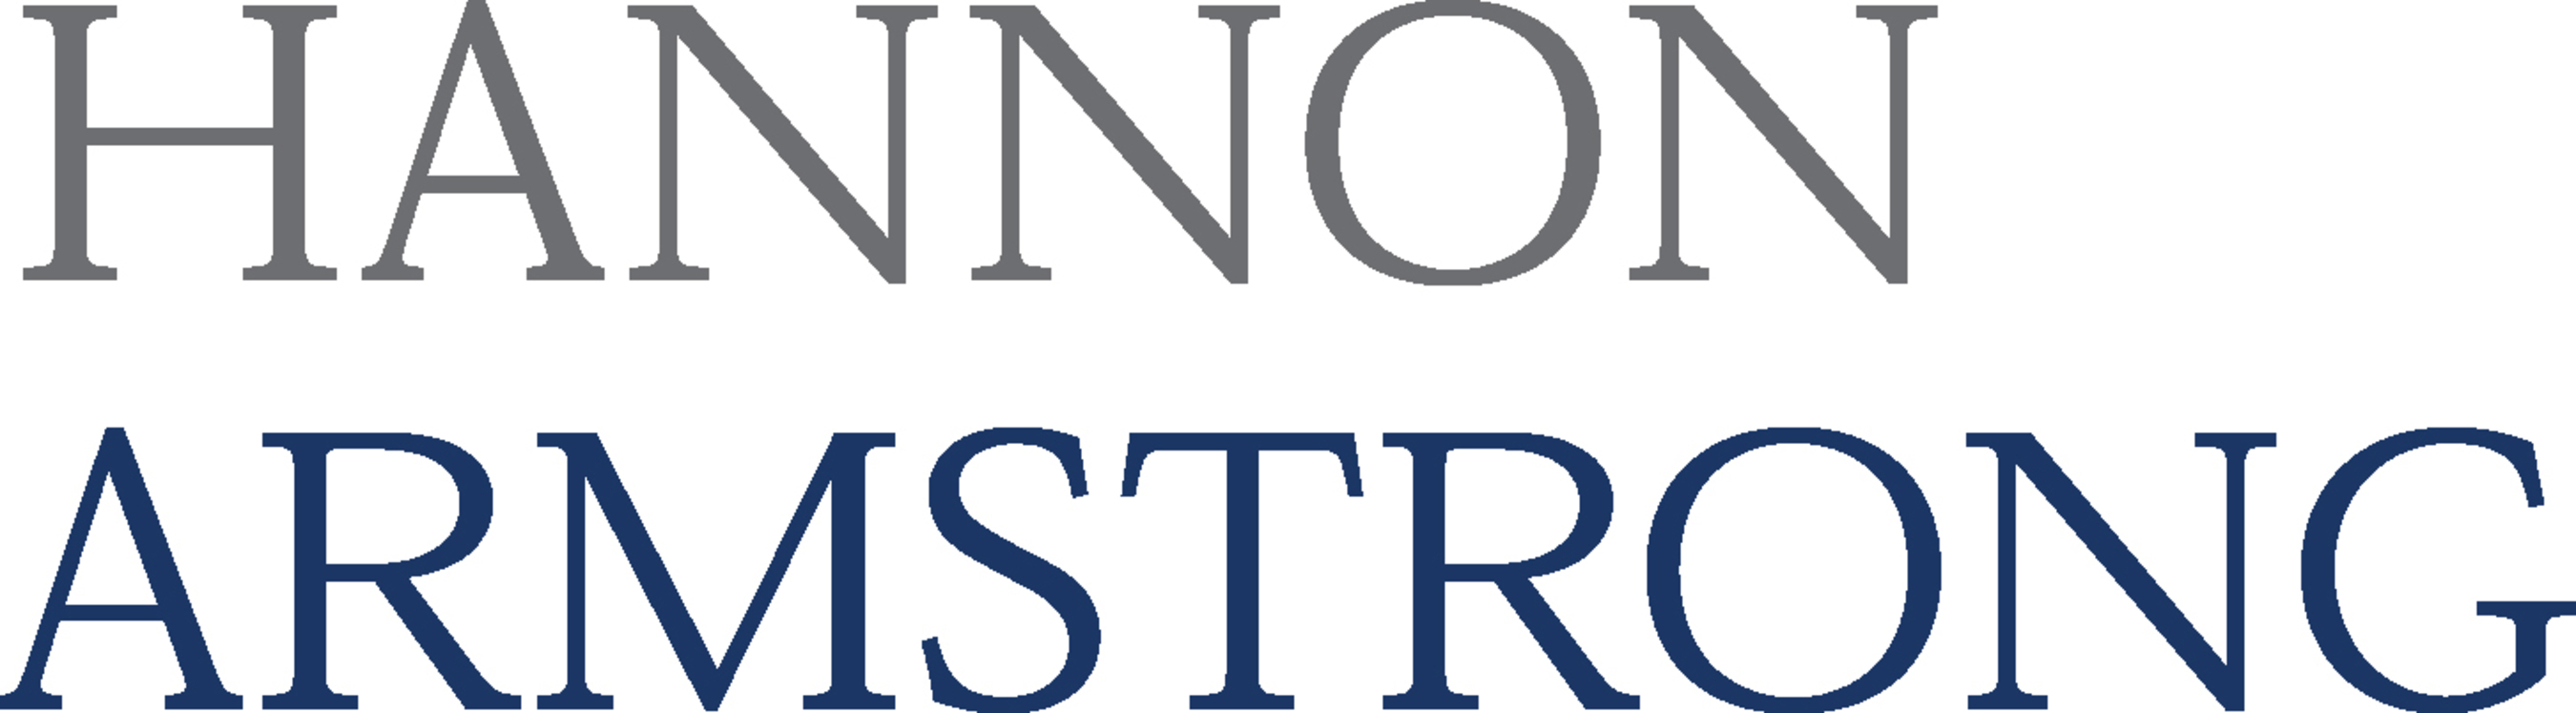 Hannon Armstrong Sustainable Infrastructure Logo.